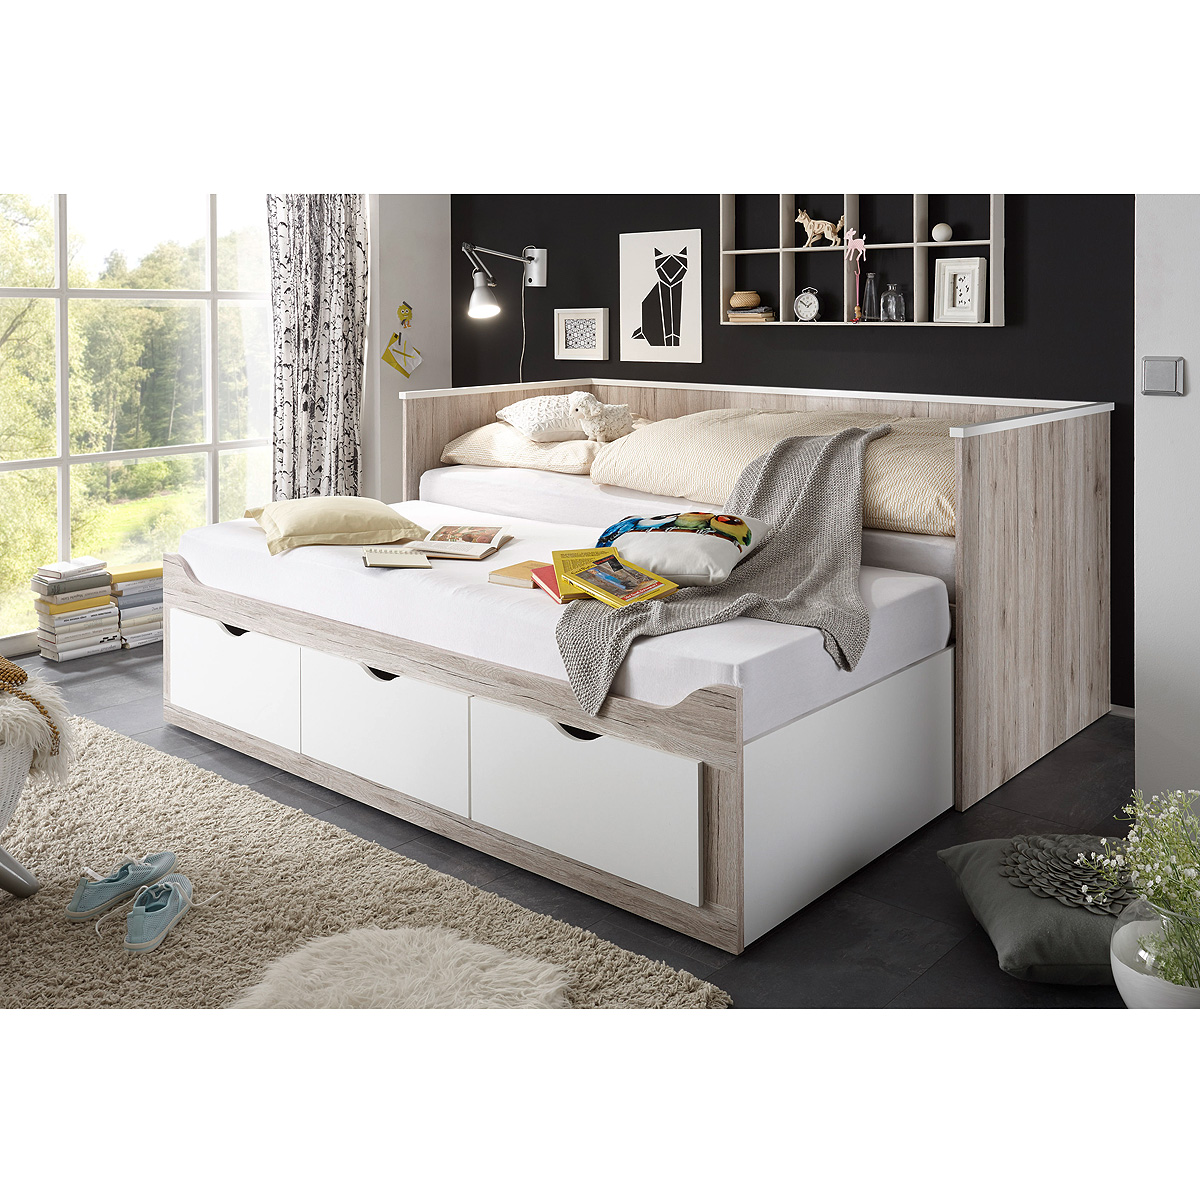 kojenbett oscar tandemliege liege bett mit rollrost in sandeiche wei 90x200 eur 359 05. Black Bedroom Furniture Sets. Home Design Ideas